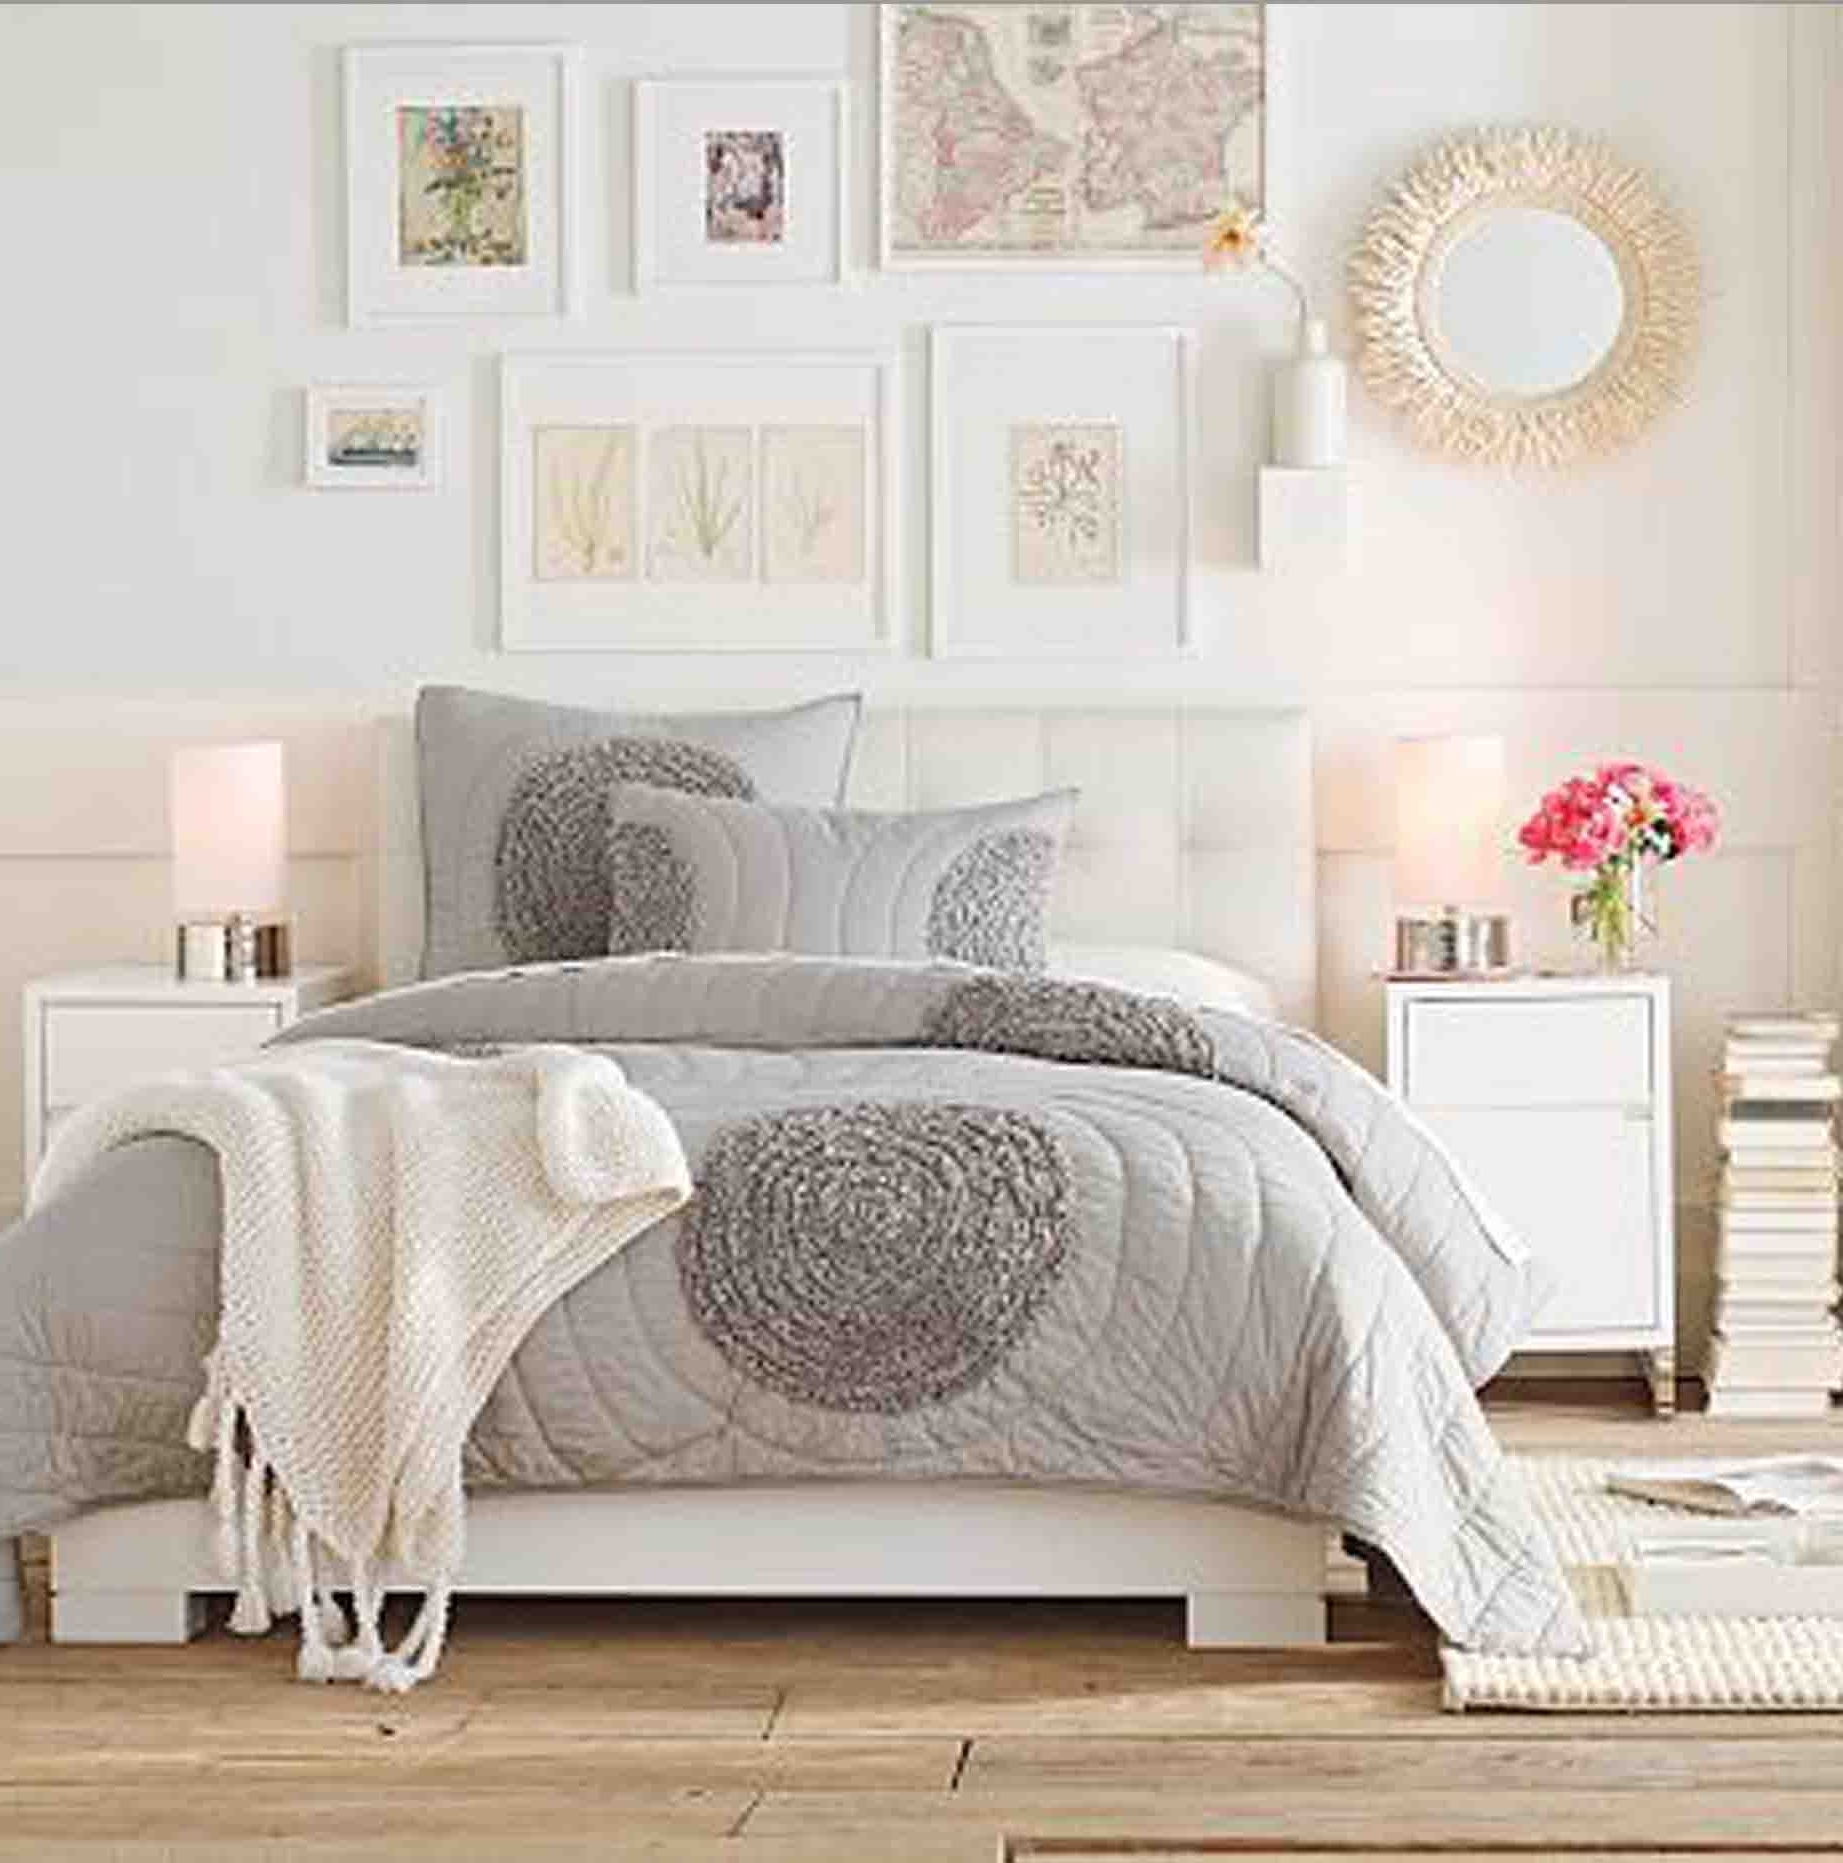 Feminine Wall Art Regarding Newest Light And Bright Bedroom Ideas Grey Nutral White Feminine Lime (View 5 of 15)